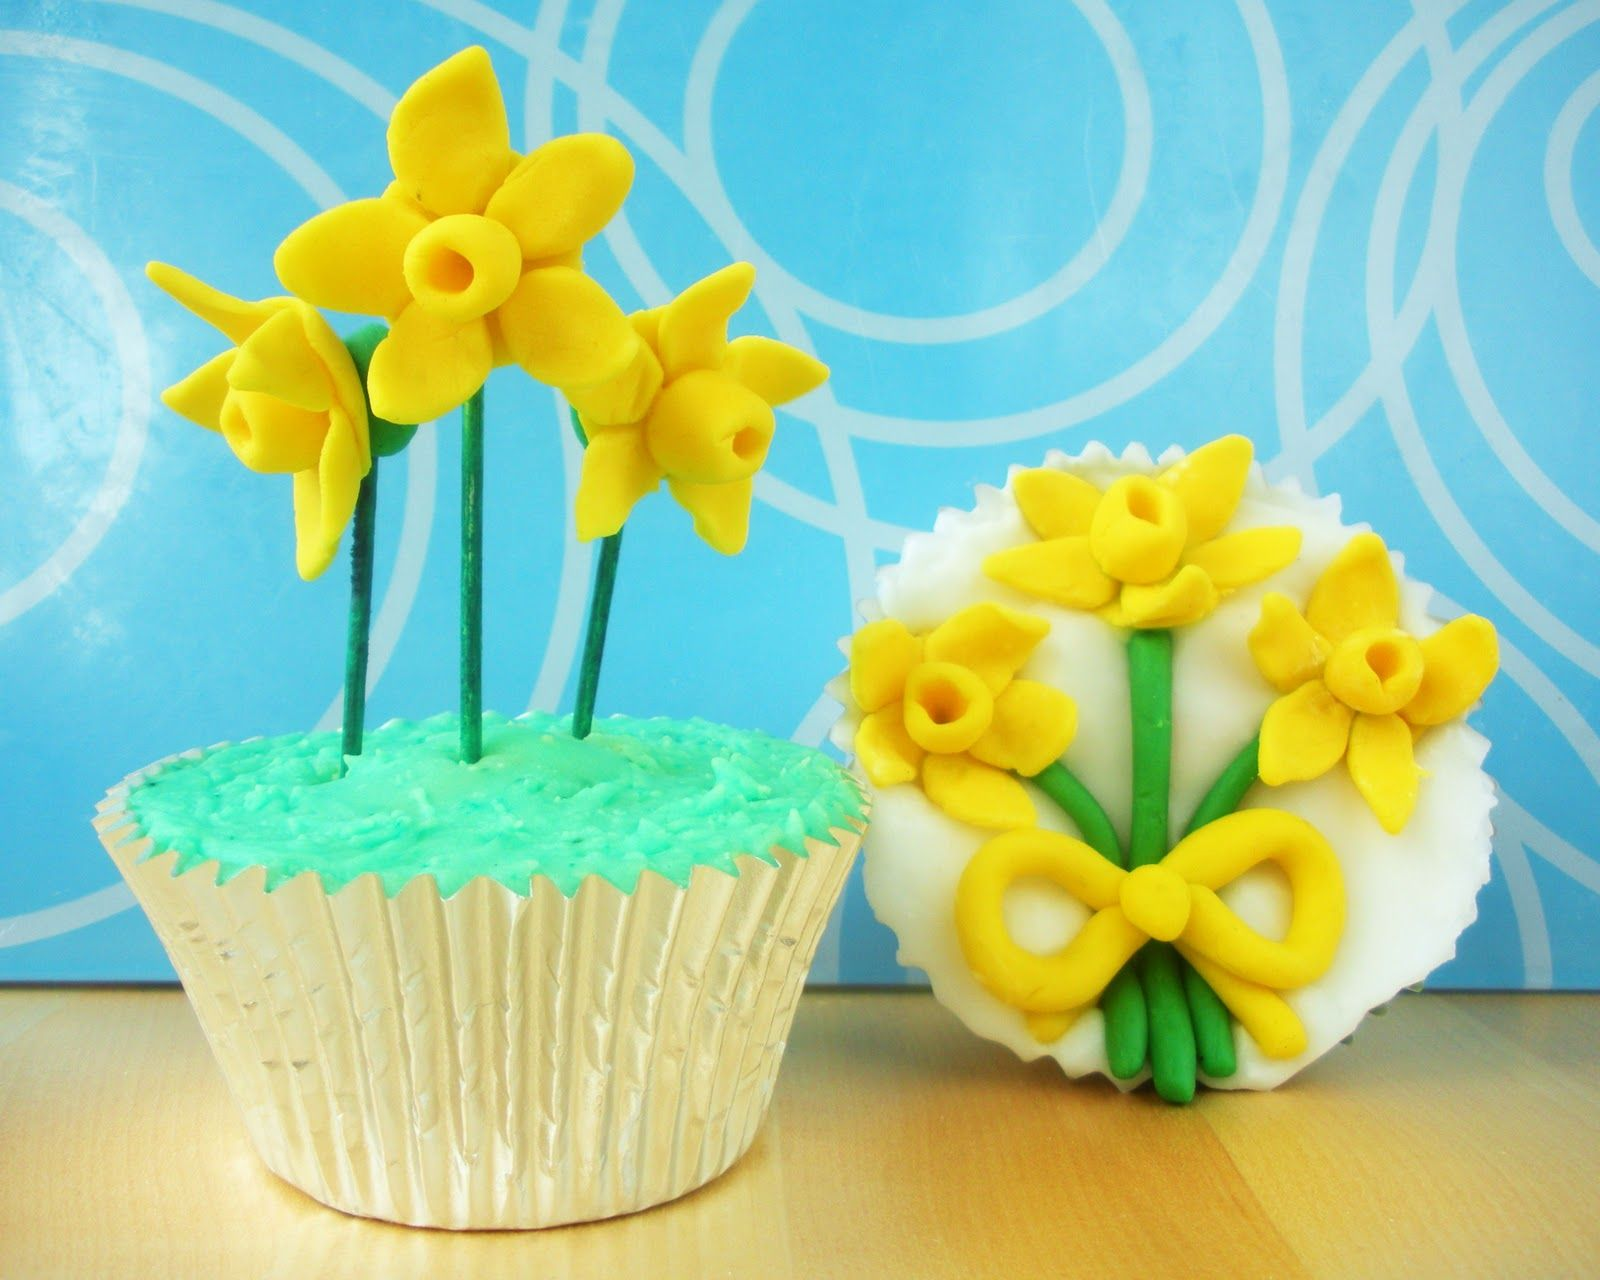 Cupcake decorating is a great hobby, and there are plenty of things you can make without having to invest in expensive cake decorating equipment - as theselovely daffodil cake decorations show. Description from cre8tive.hubpages.com. I searched for this on bing.com/images